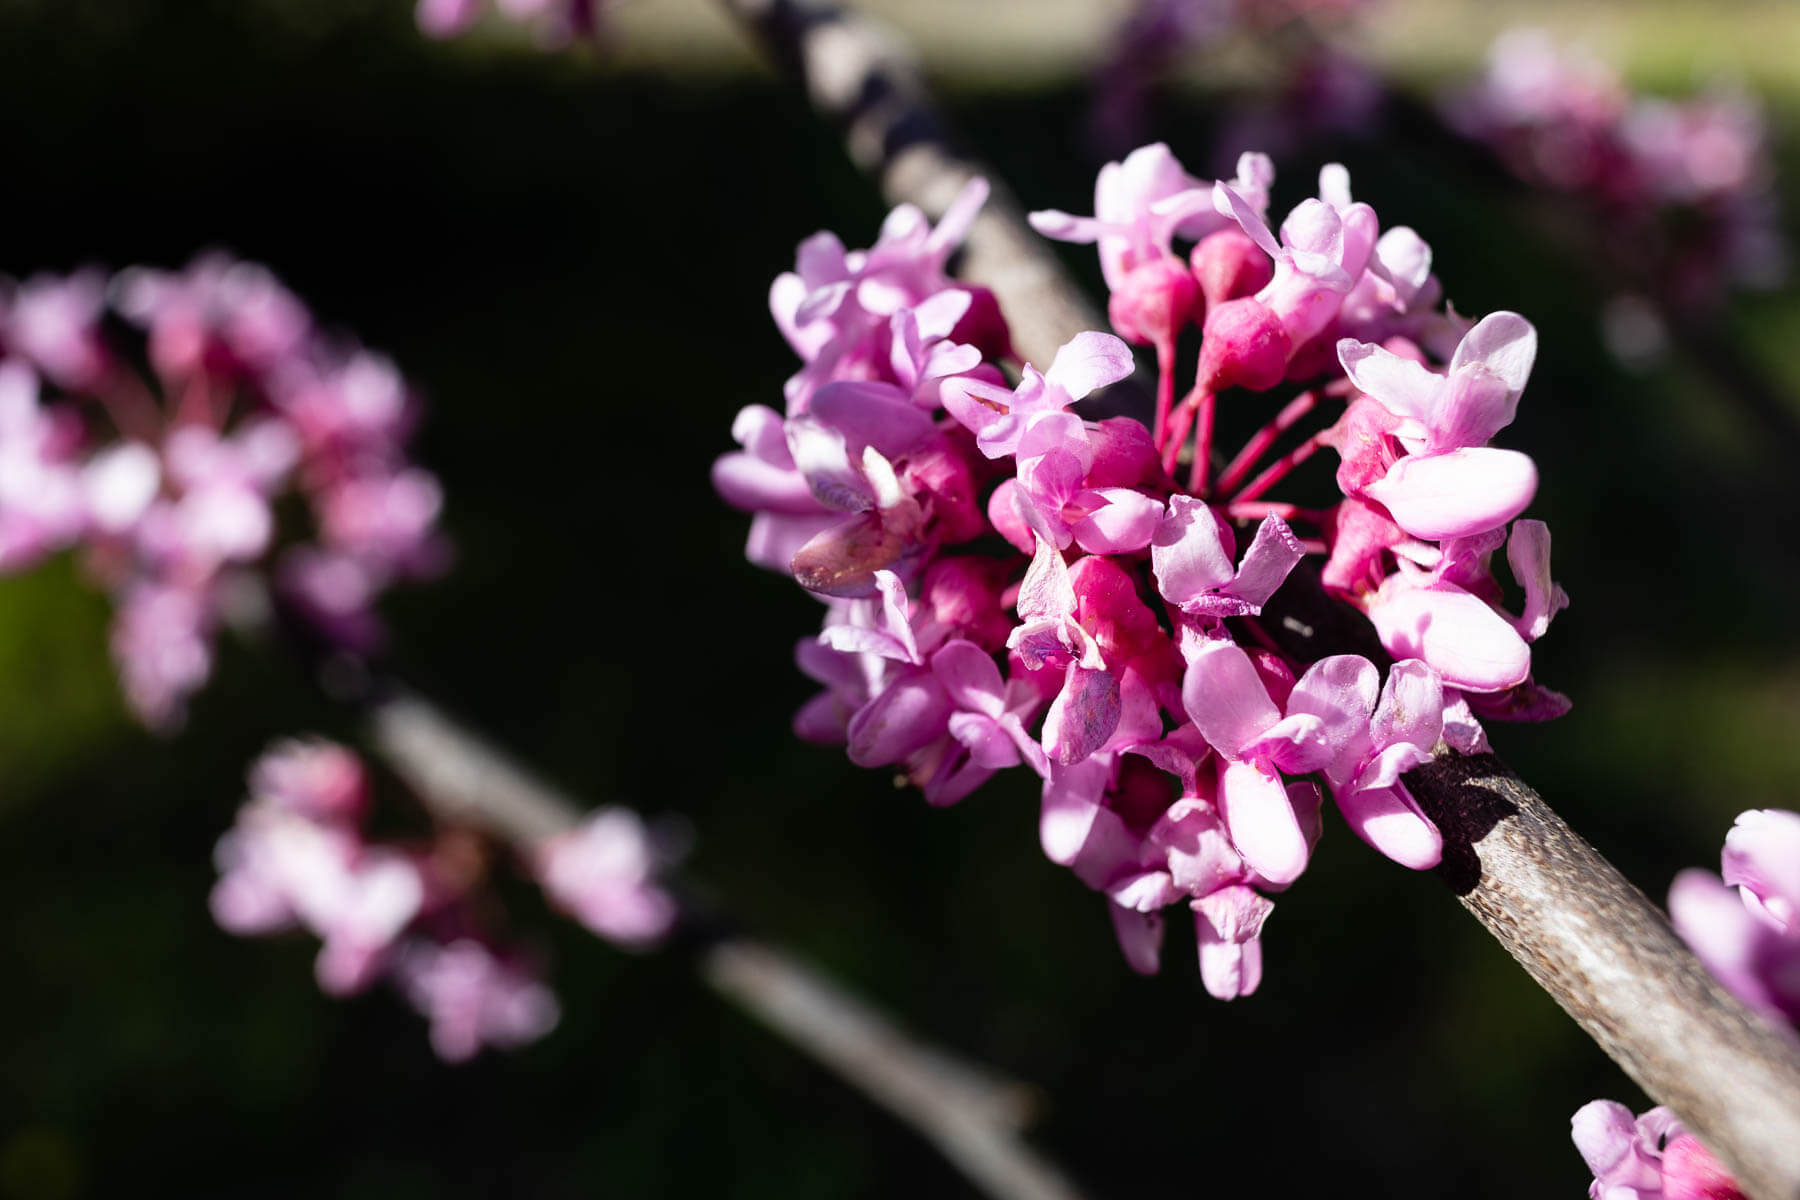 Clusters of pink flowers line several tree branches